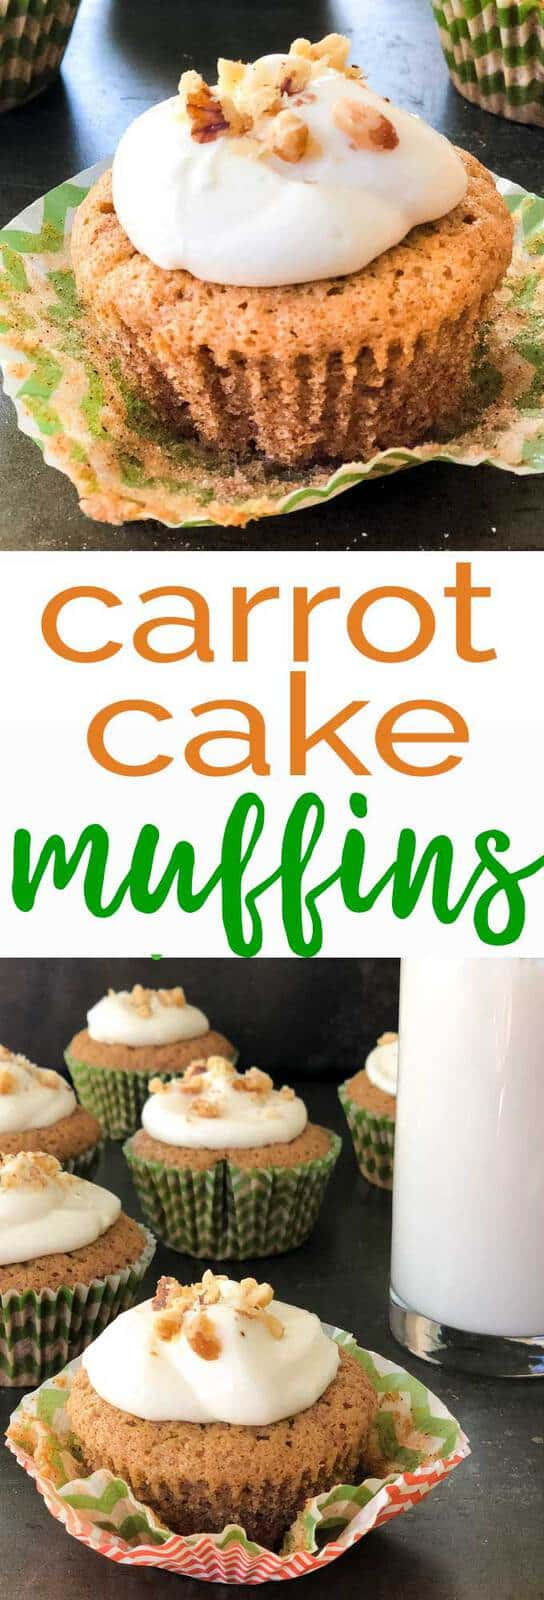 Springtime favorite carrot cake in muffin form! Perfectly spiced carrot cake with a creamy, delicious cream cheese frosting. Perfect for Easter breakfast.